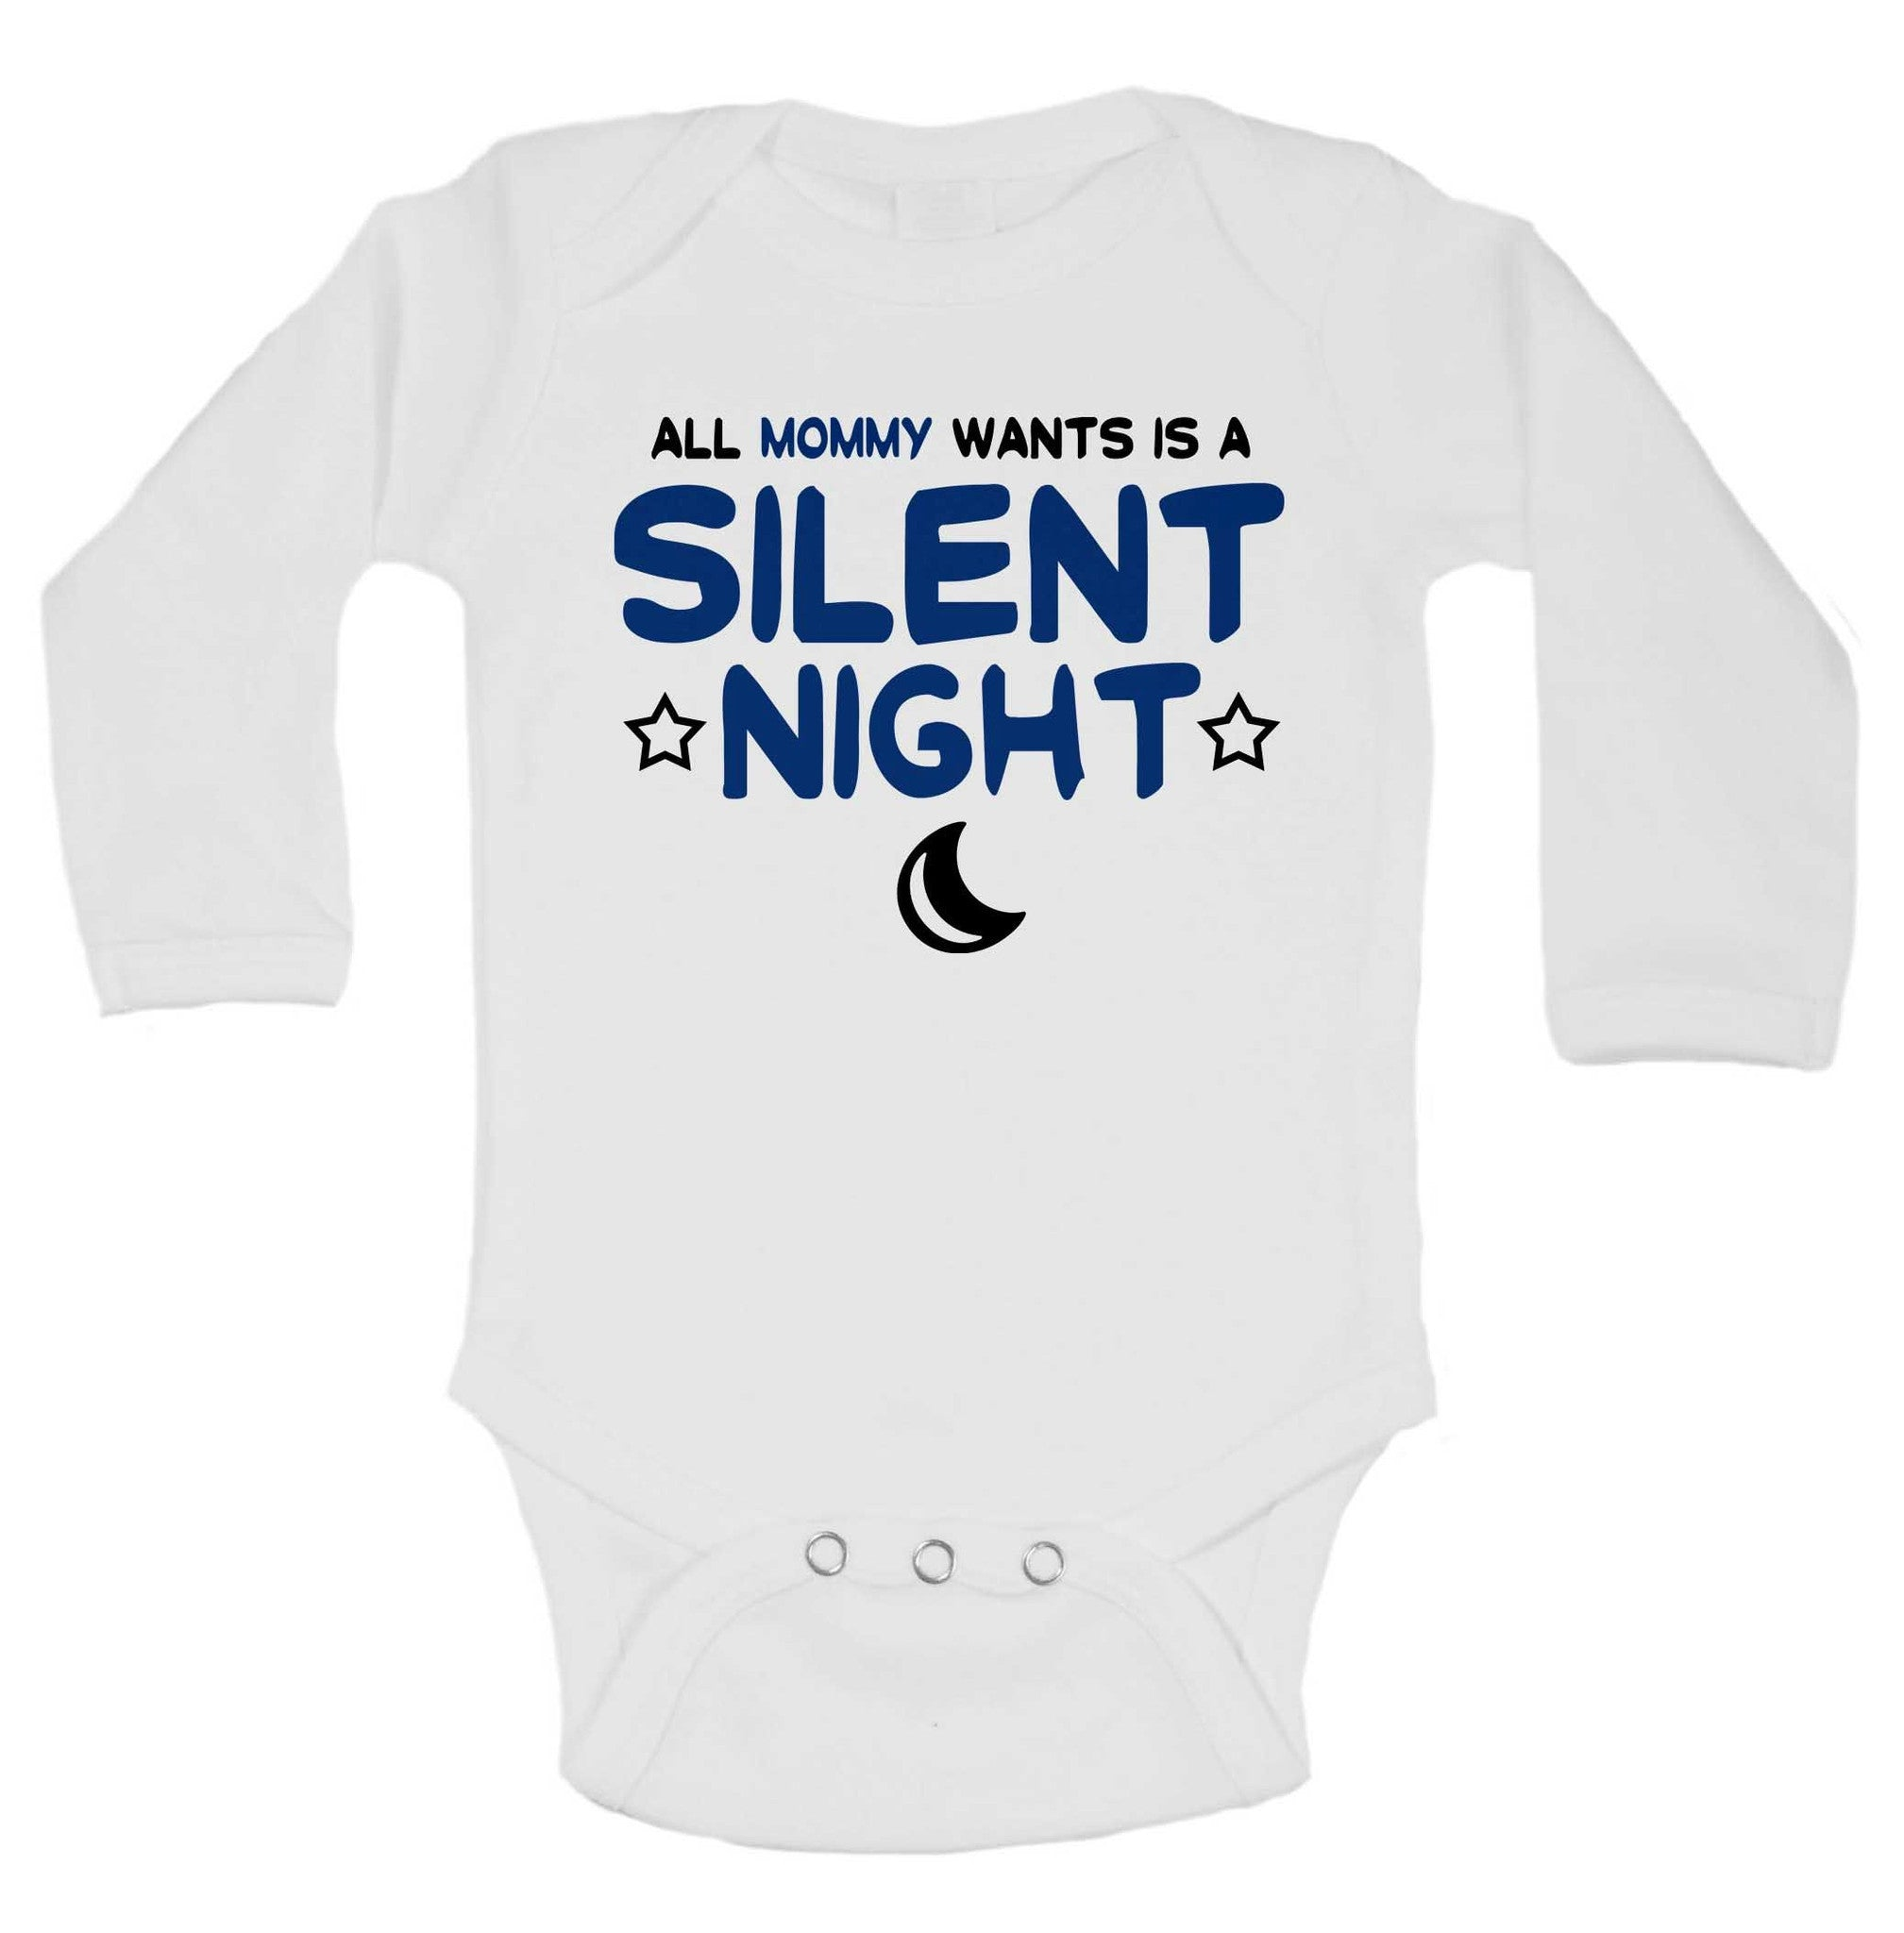 All Mommy Wants Is A Silent Night Funny Kids Onesie - 232 - Funny Shirts Tank Tops Burnouts and Triblends  - 1